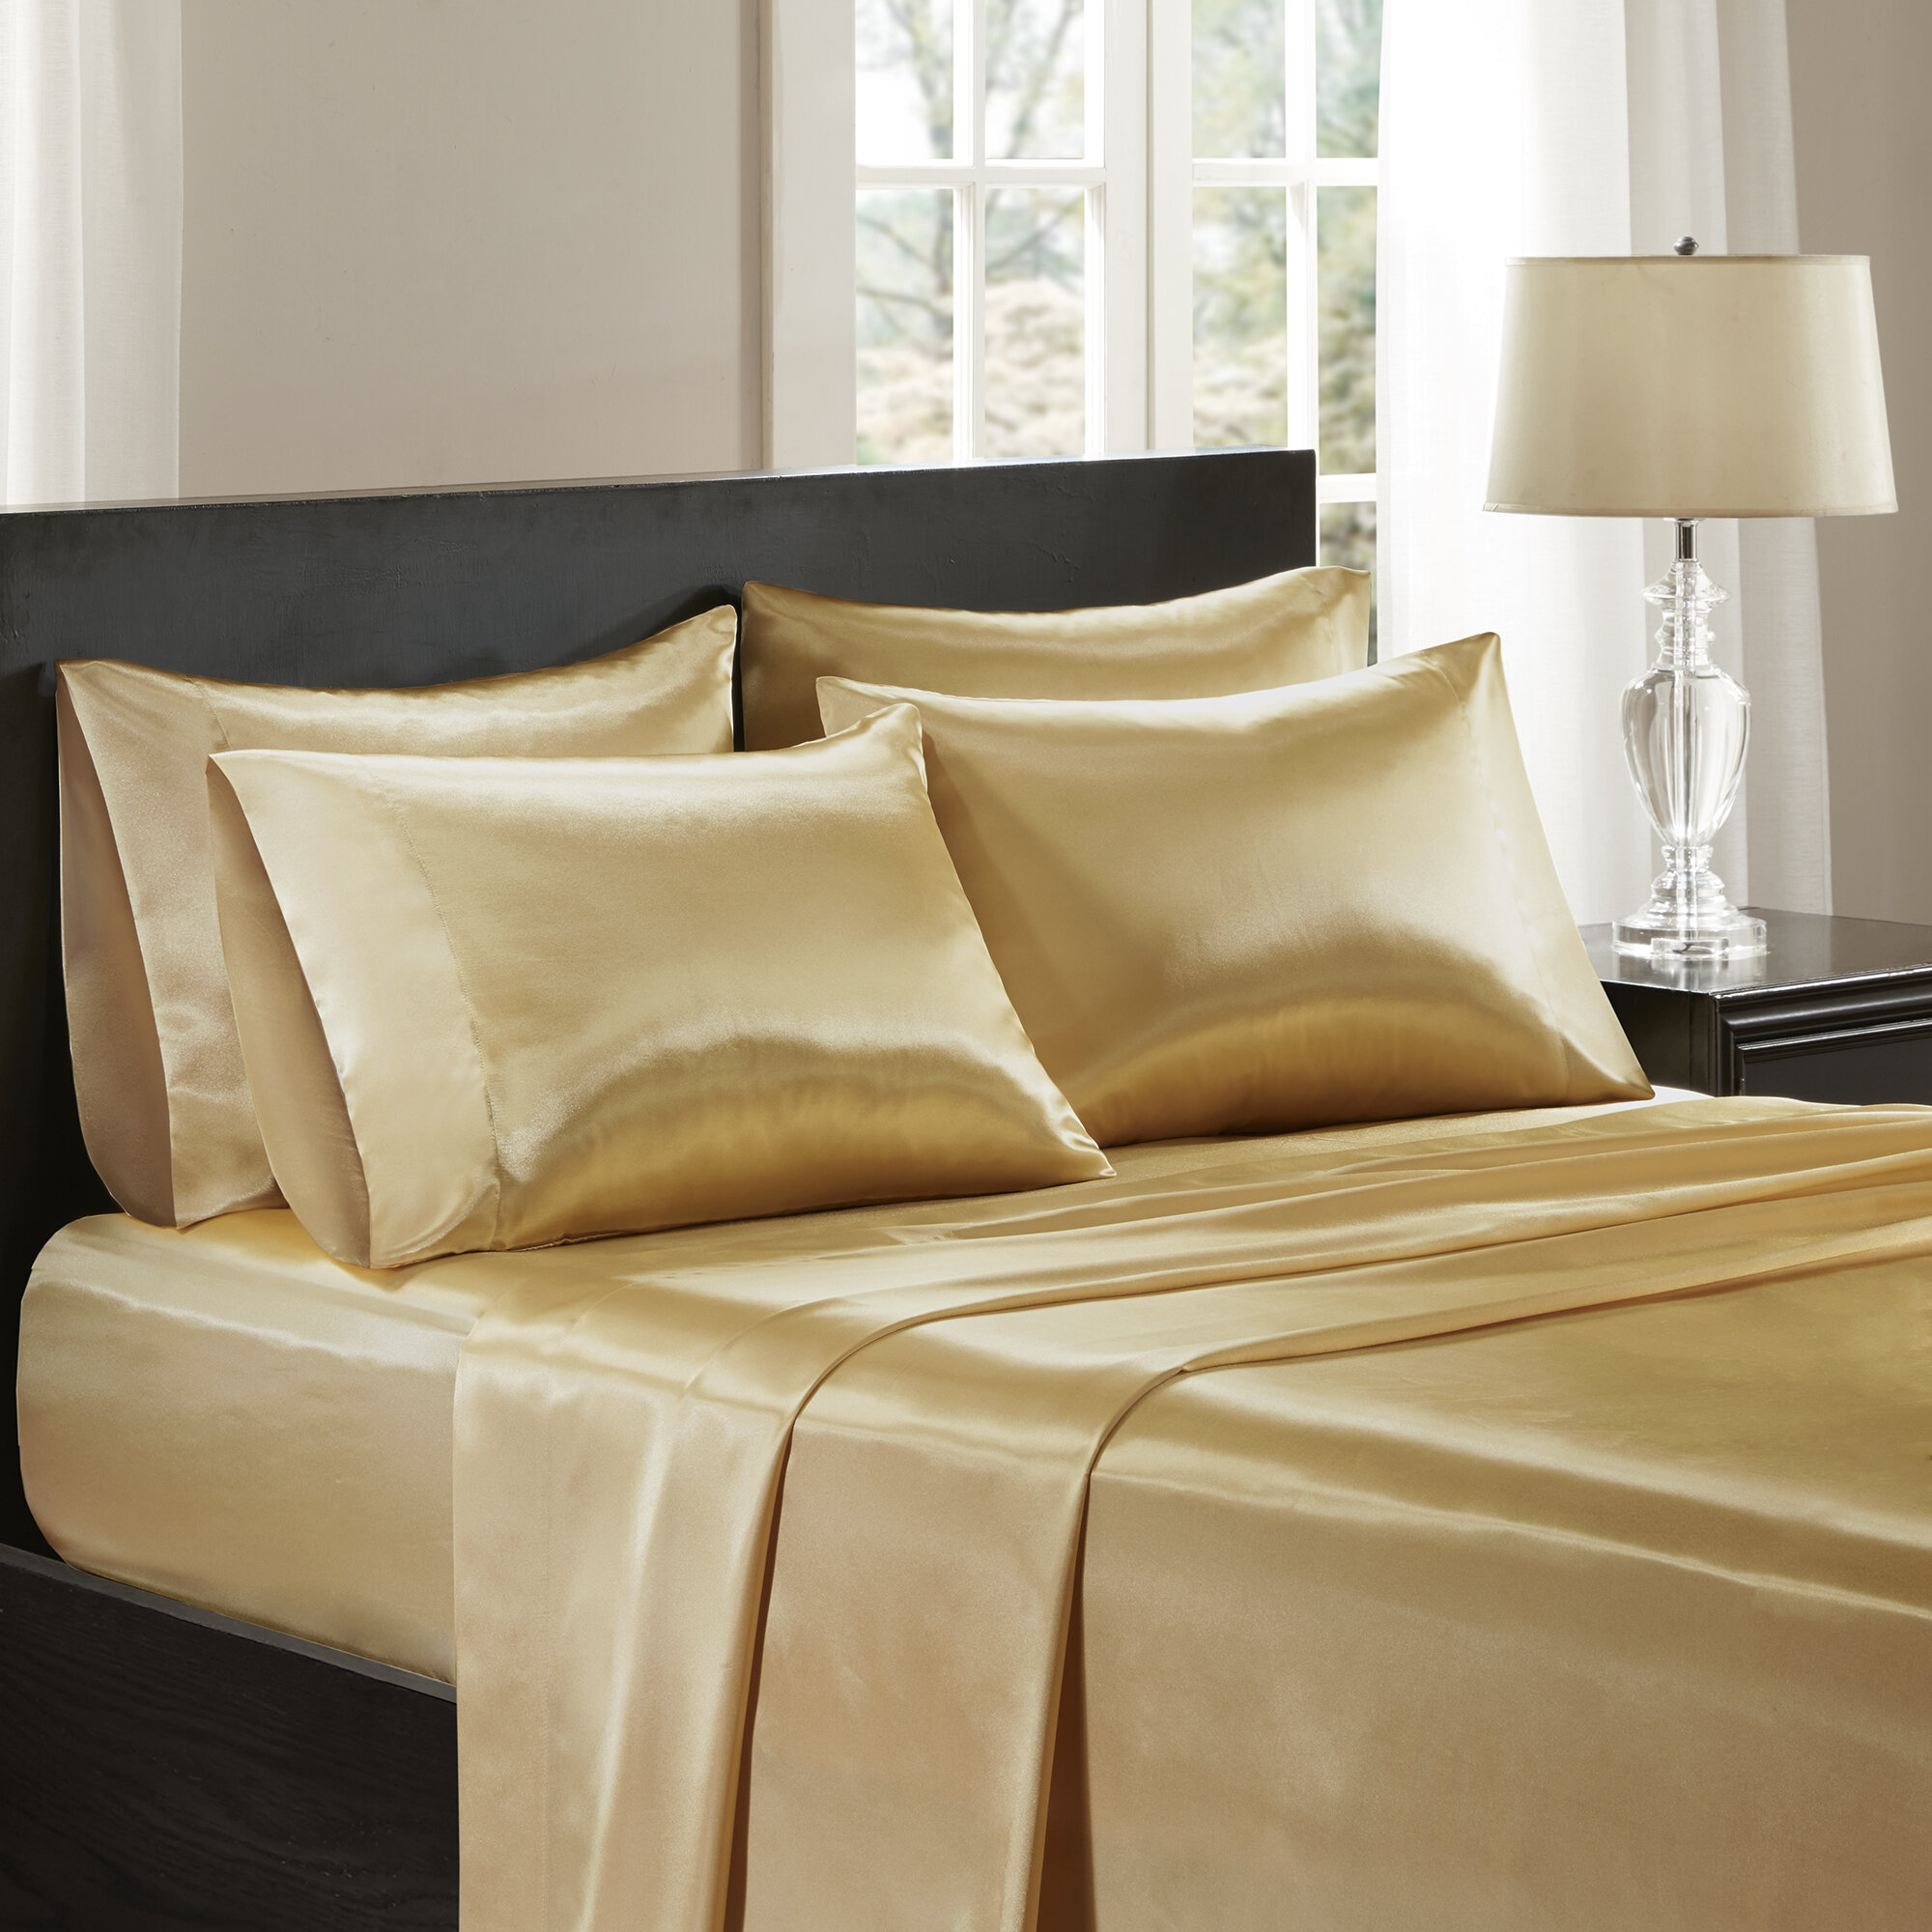 Bed Sheets You Ll Love Wayfair